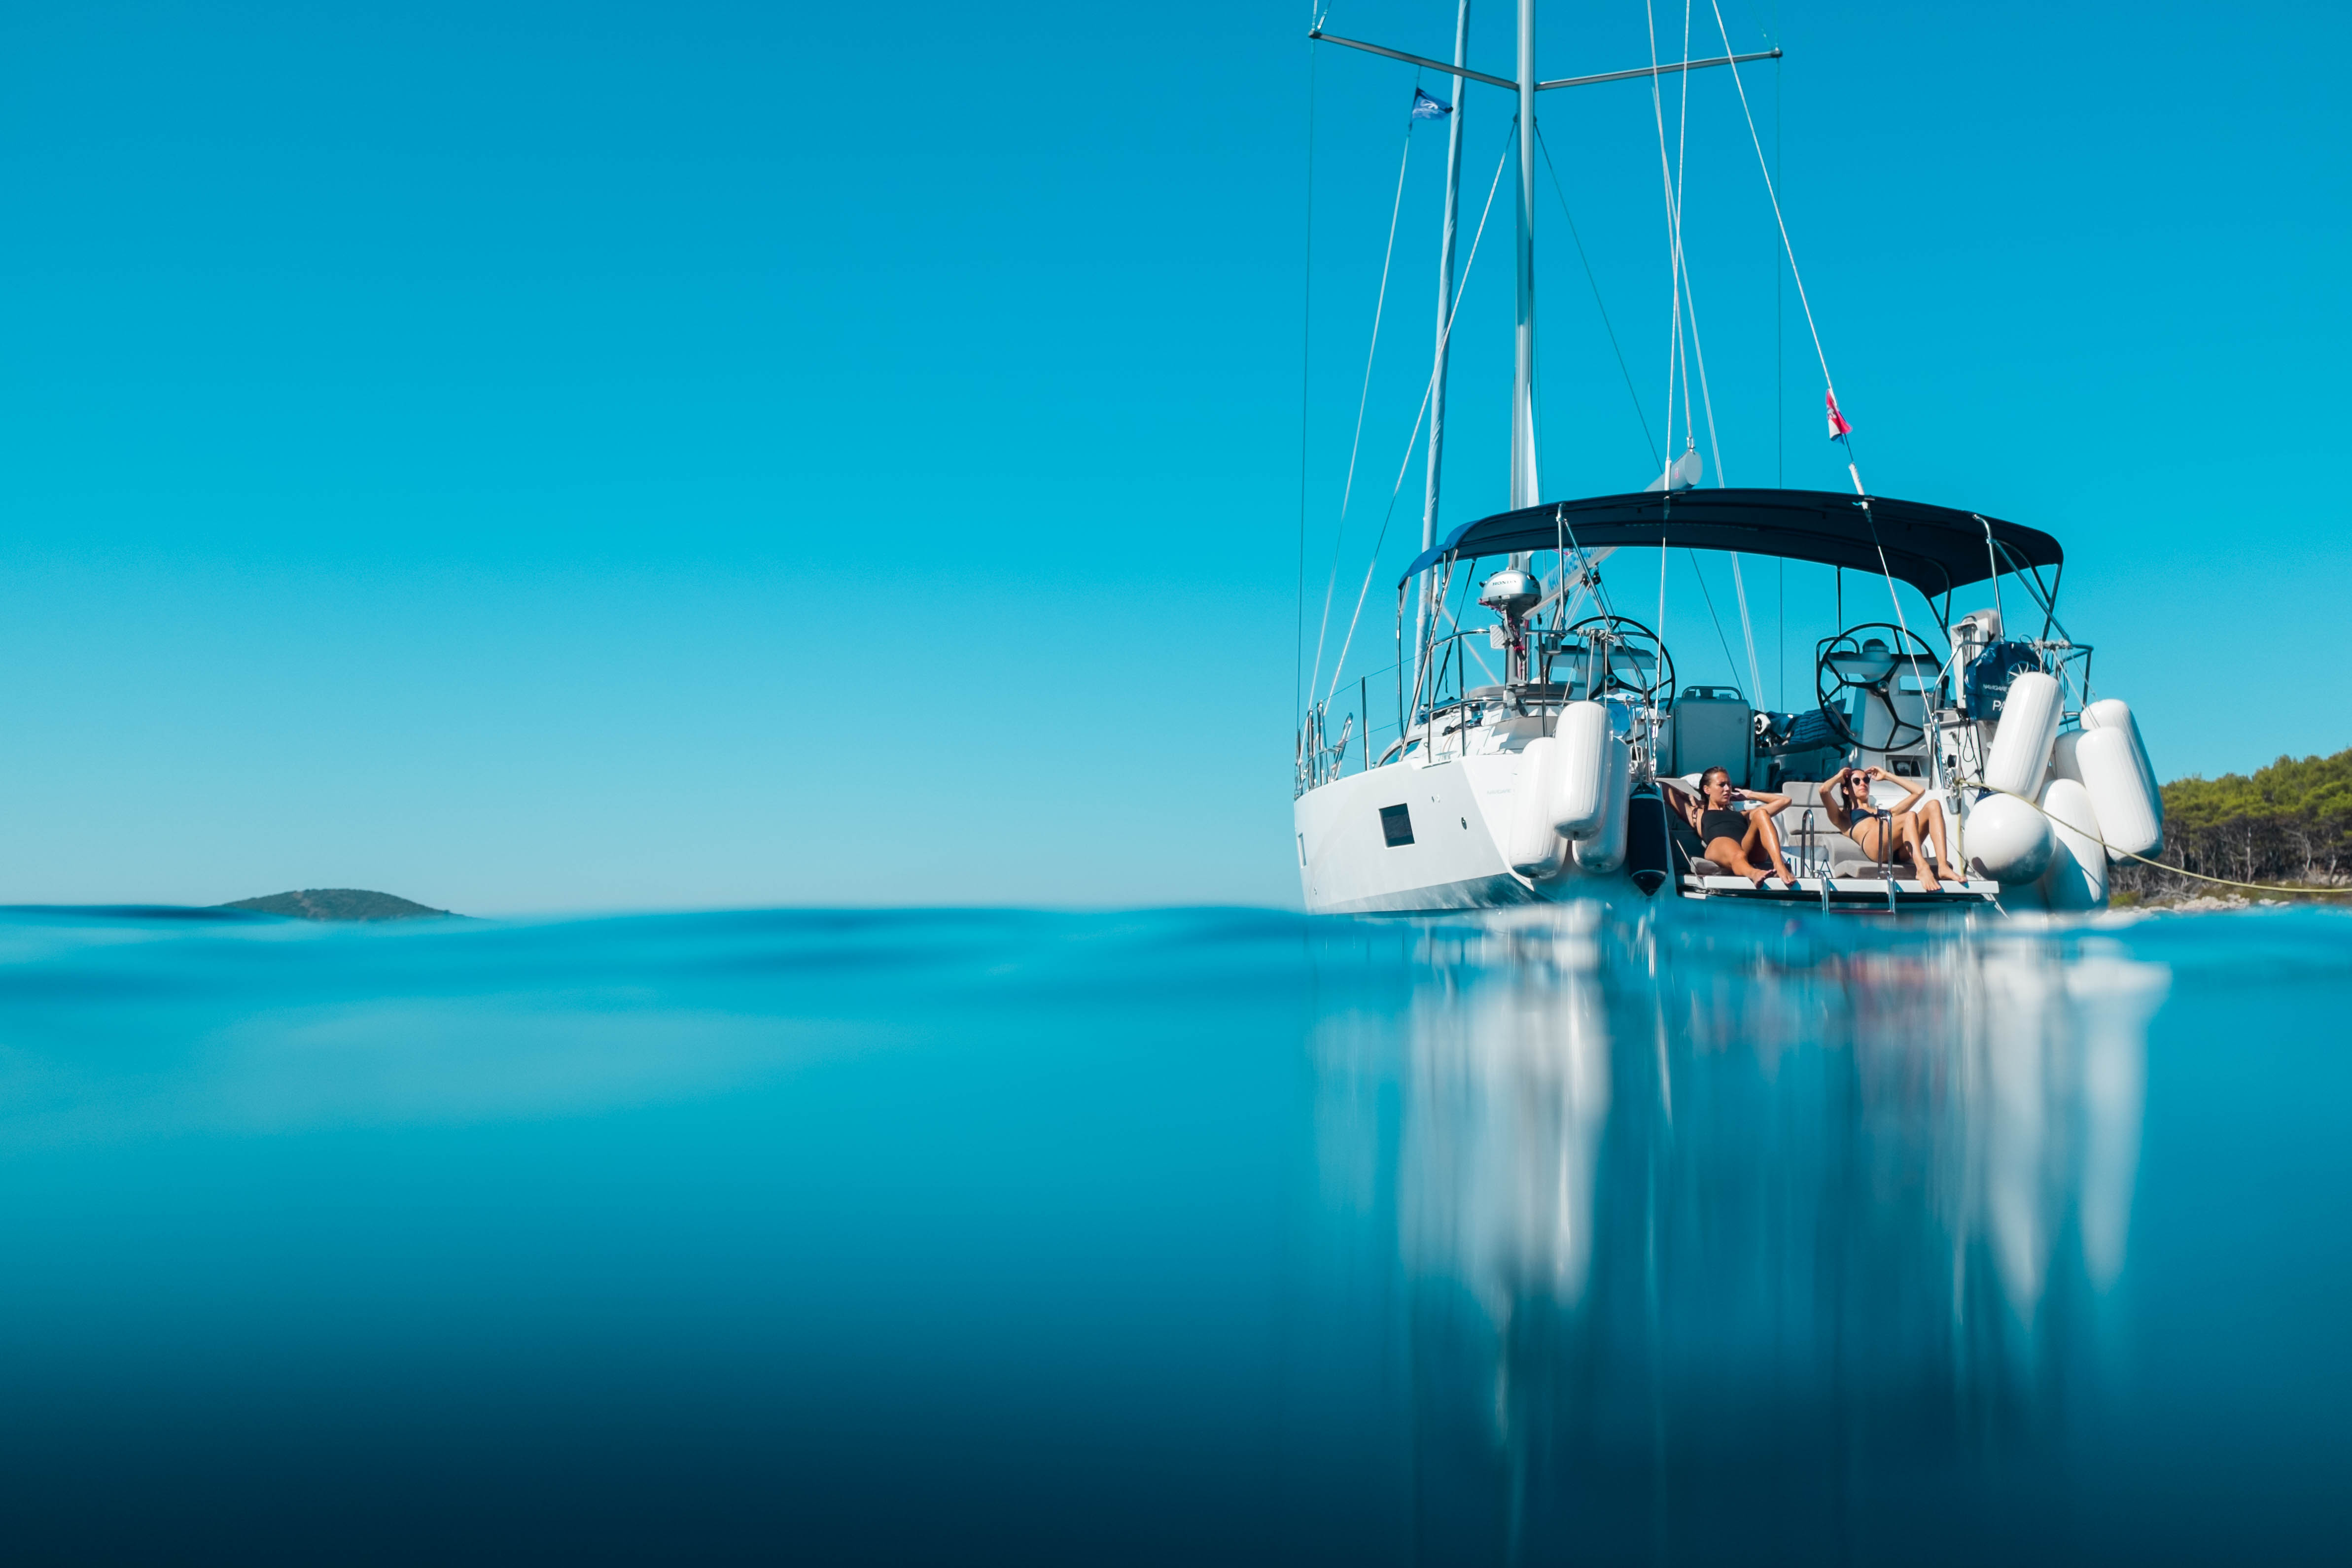 Dalmatian islands paradise - Sailing from Dubrovnik to Split